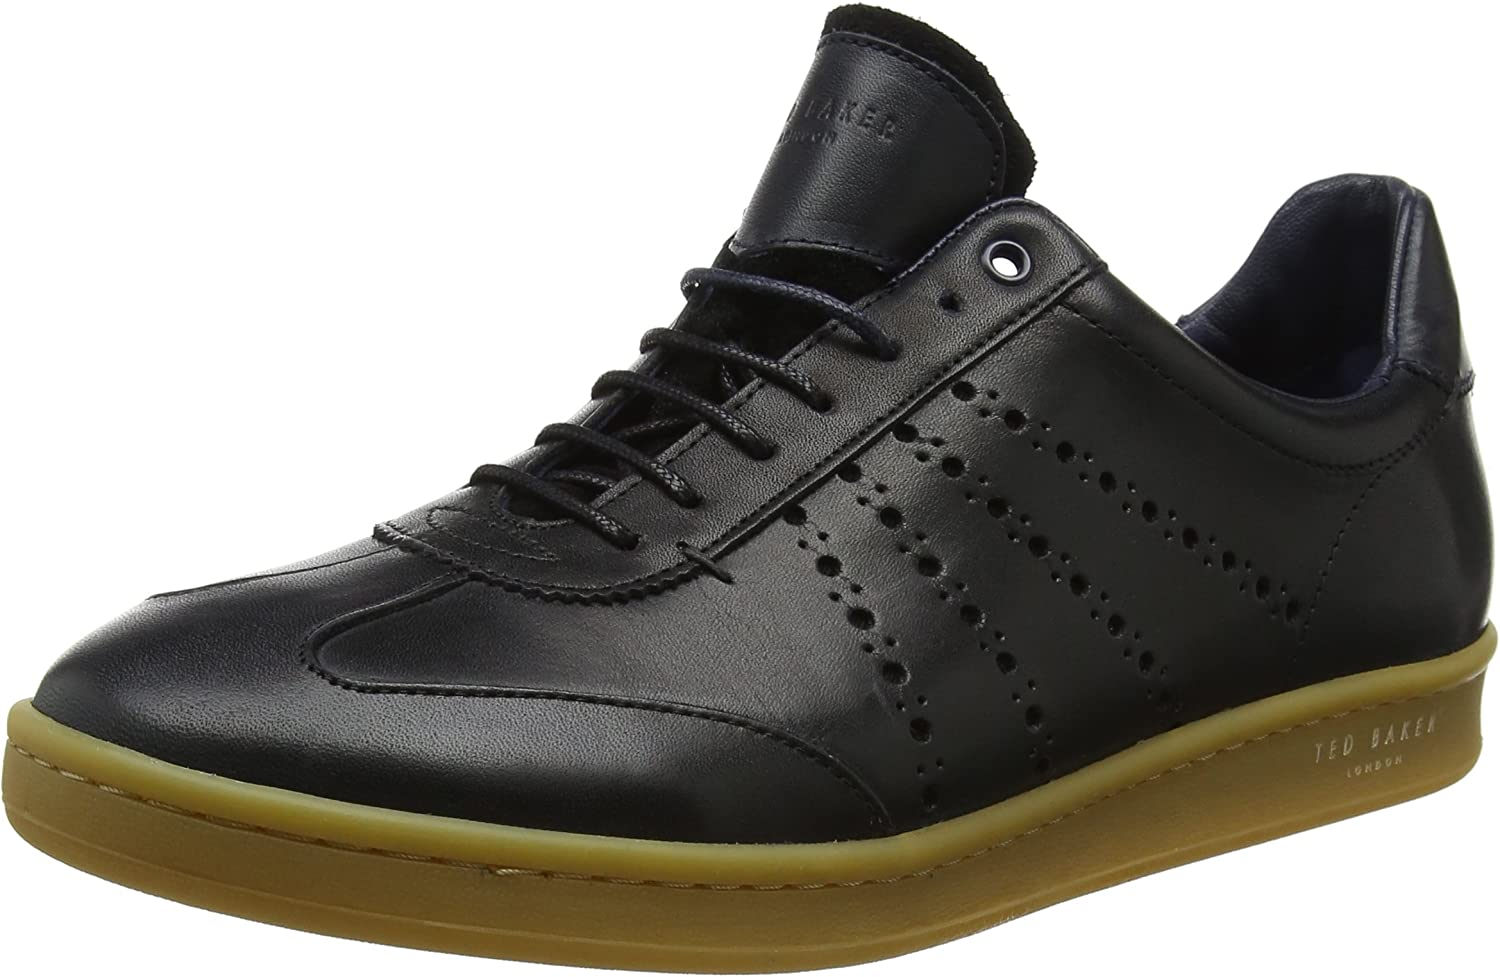 Ted Baker Orlee - Black Leather Mens shoes